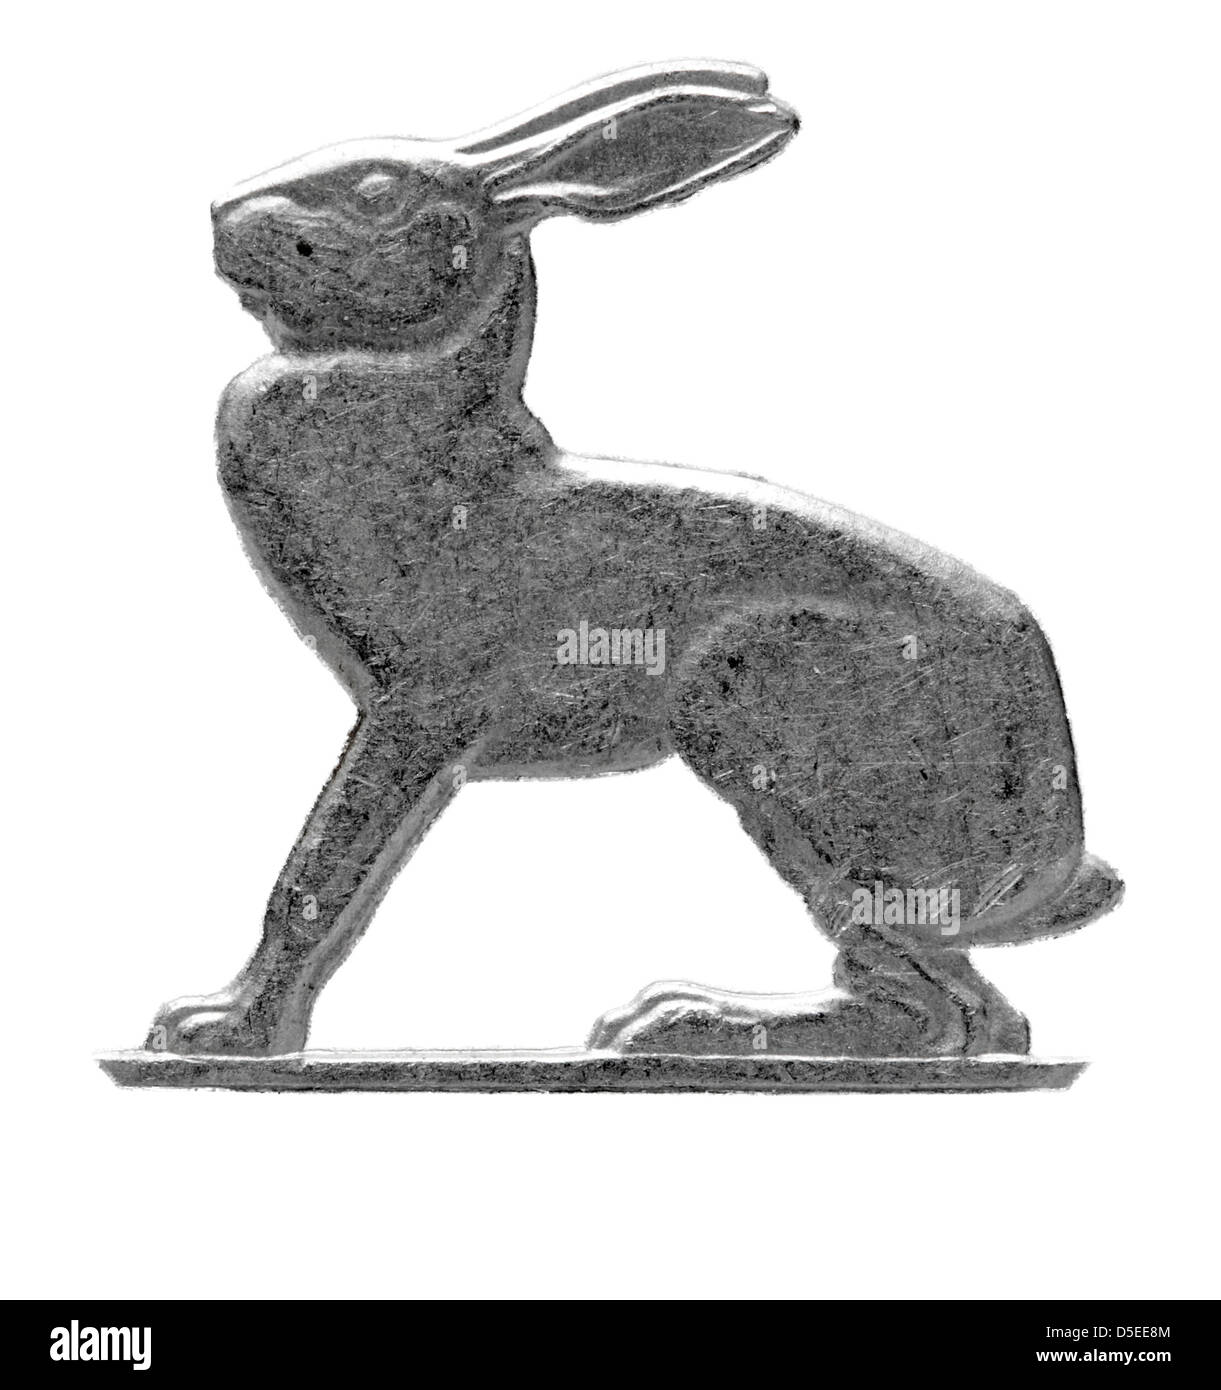 Hare from 3 pence coin, Hare, Ireland, 1956, on white background - Stock Image